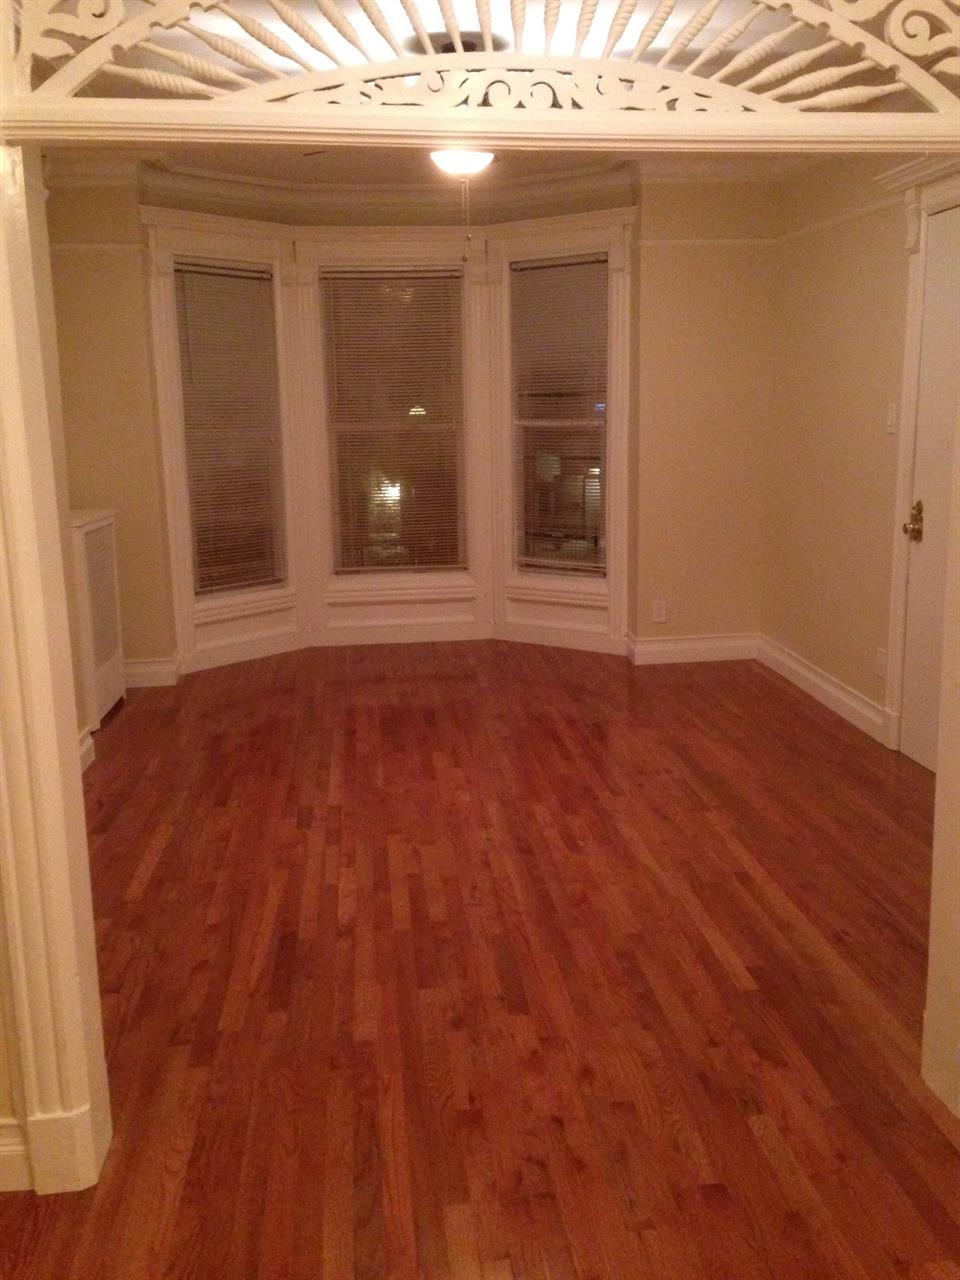 Additional photo for property listing at 11th Ave & 40th St  Brooklyn, New York 11218 United States